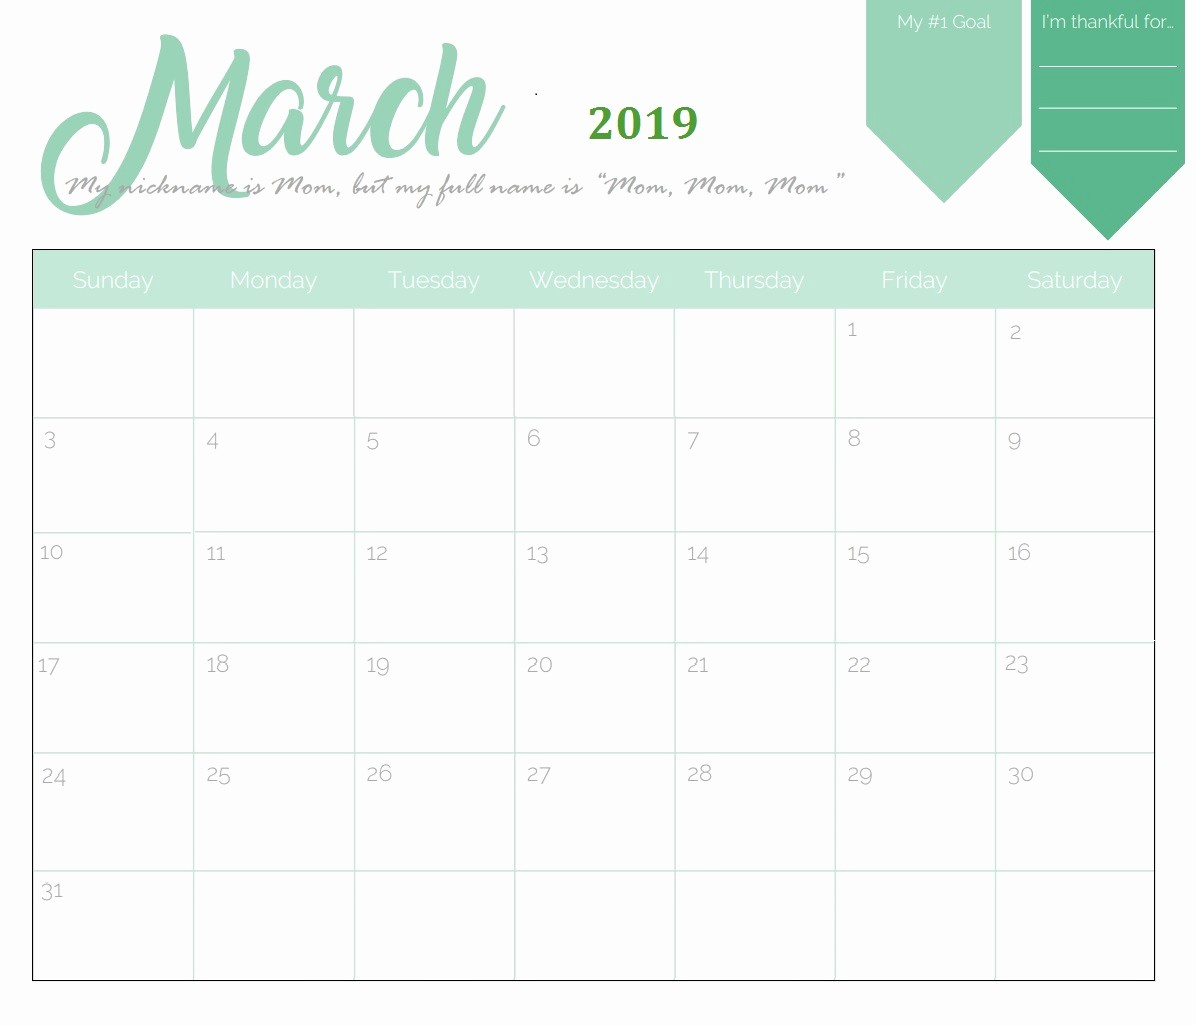 Free Printable Calendar Templates 2019 Luxury Free Printable 2019 Monthly Calendar